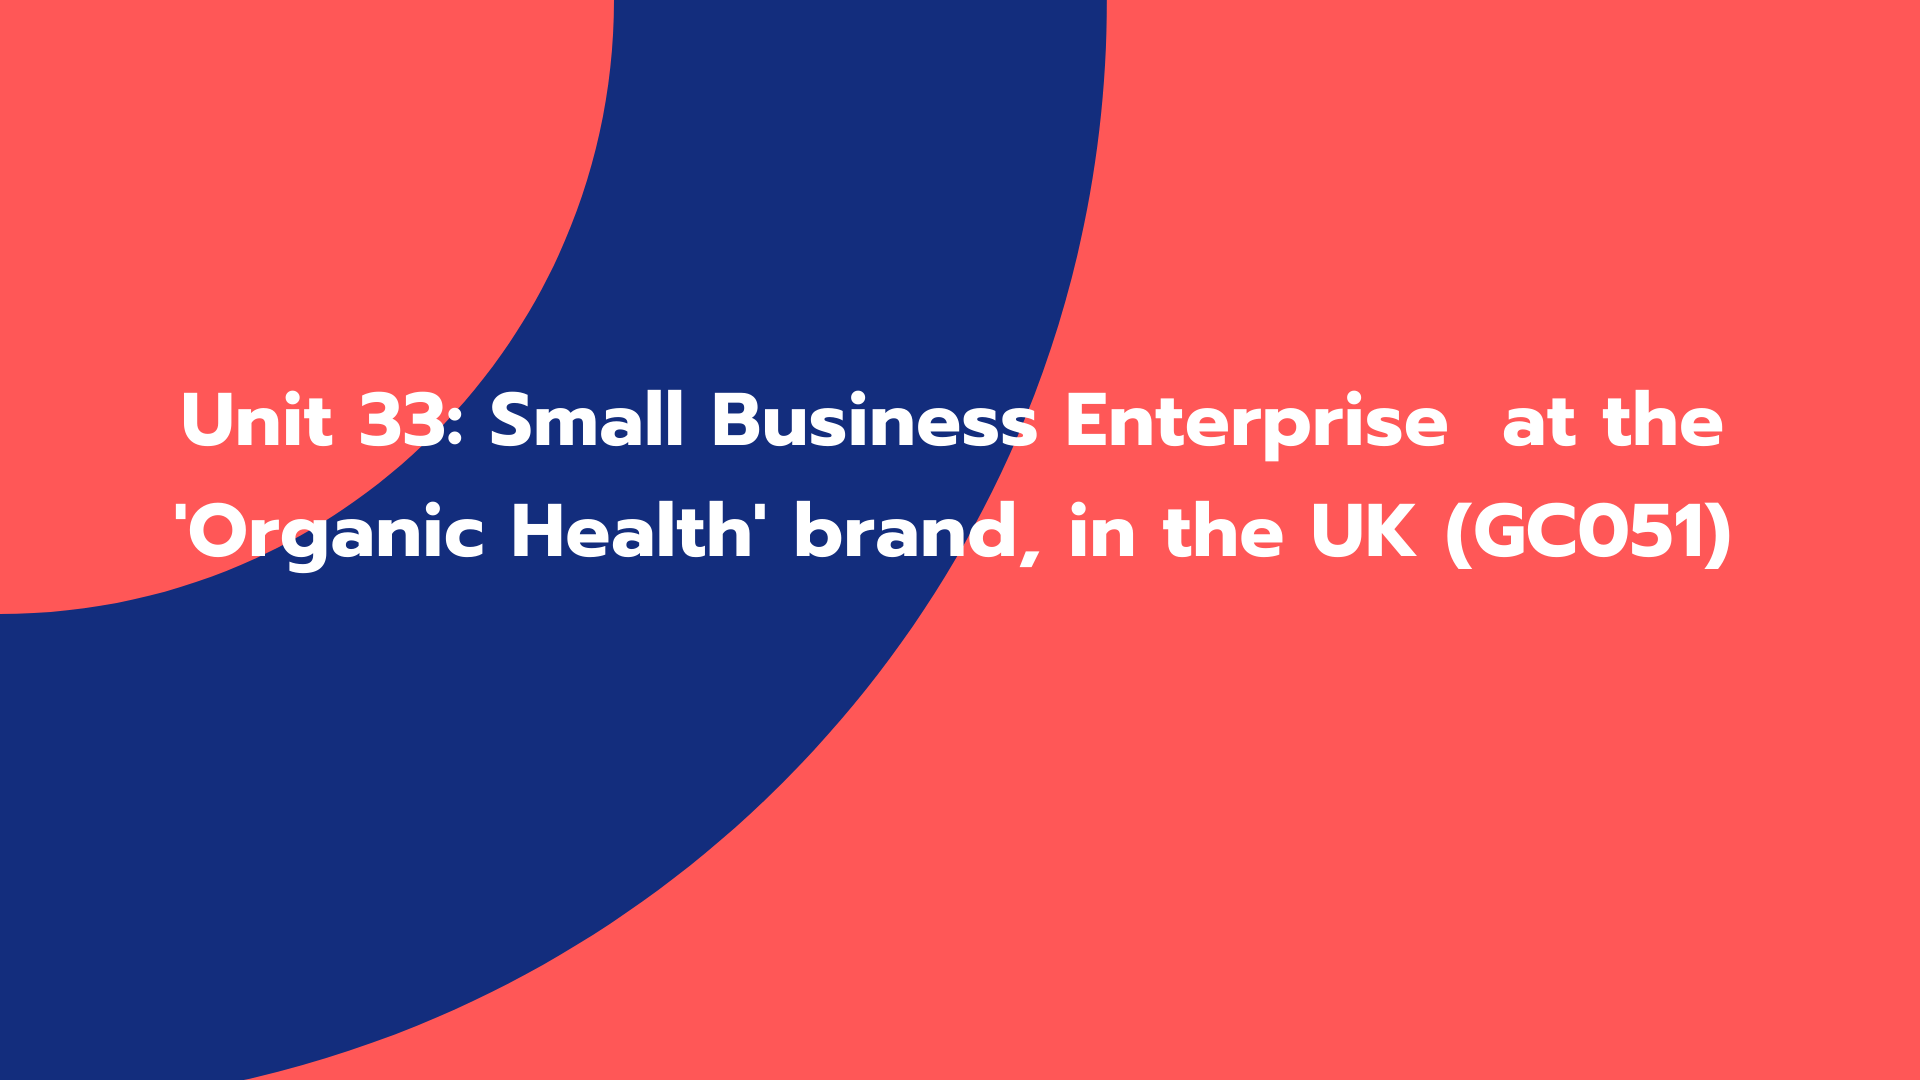 Unit 33: Small Business Enterprise at the 'Organic Health' brand, in the UK (GC051)